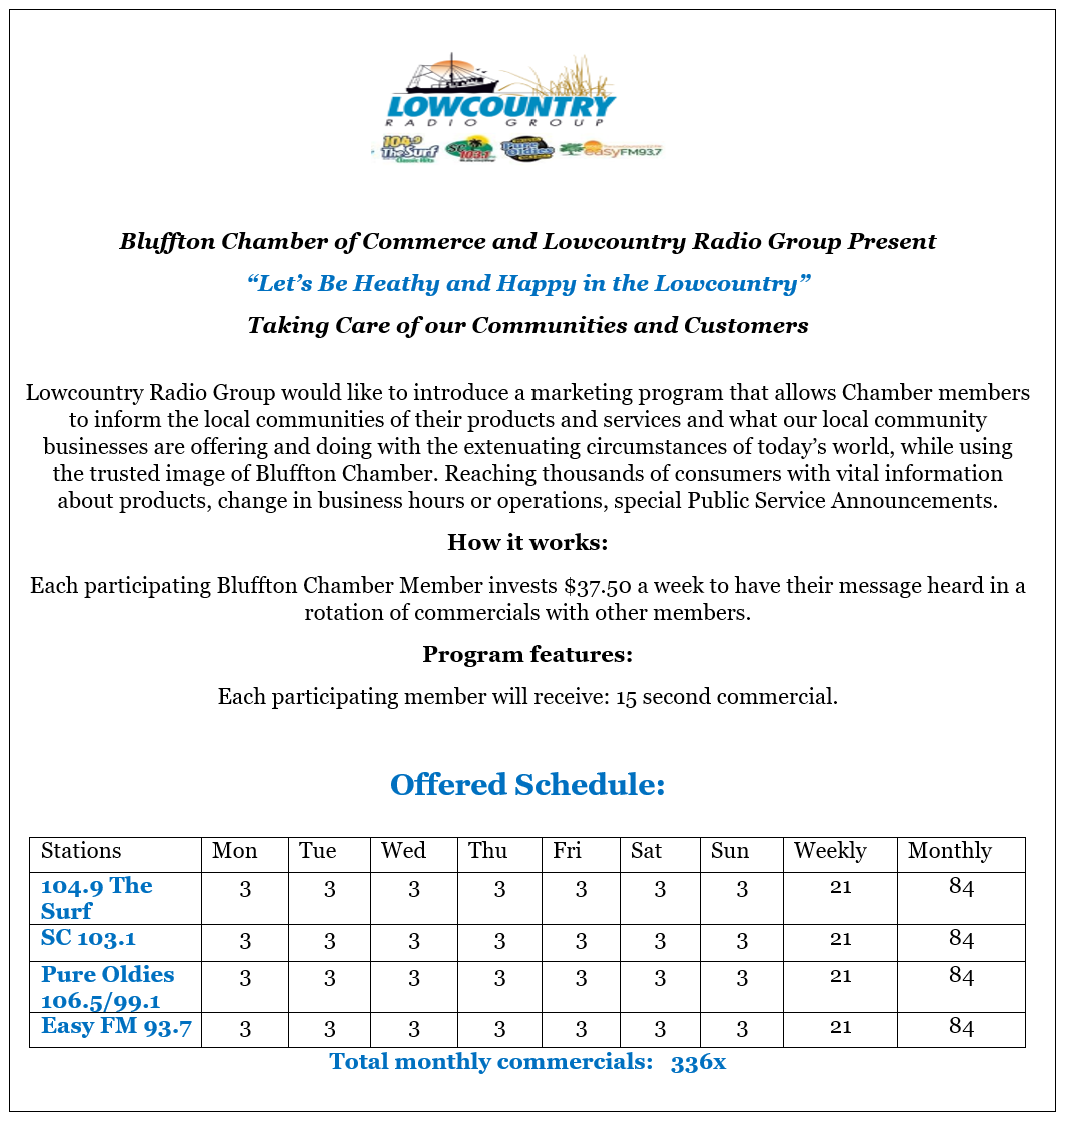 Lowcountry-Radio-Group-Speciam-Chamber-Member-Offer.PNG